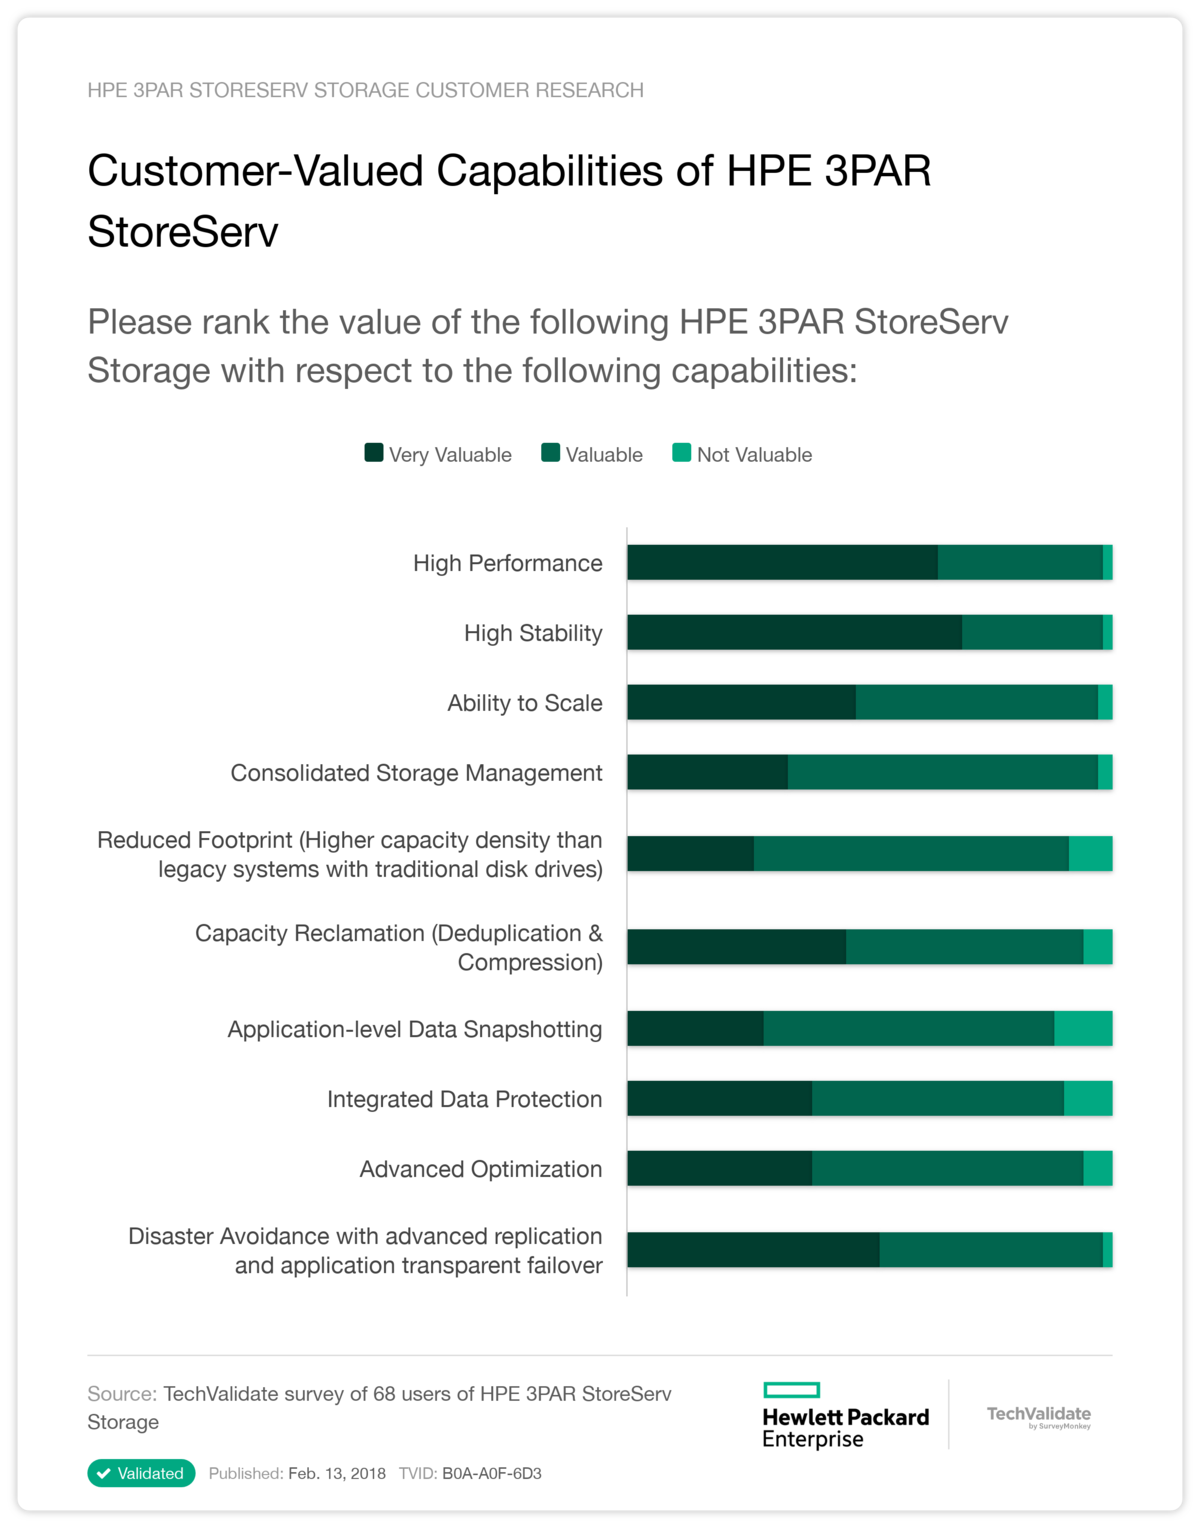 Customer-Valued Capabilities of HPE 3PAR StoreServ